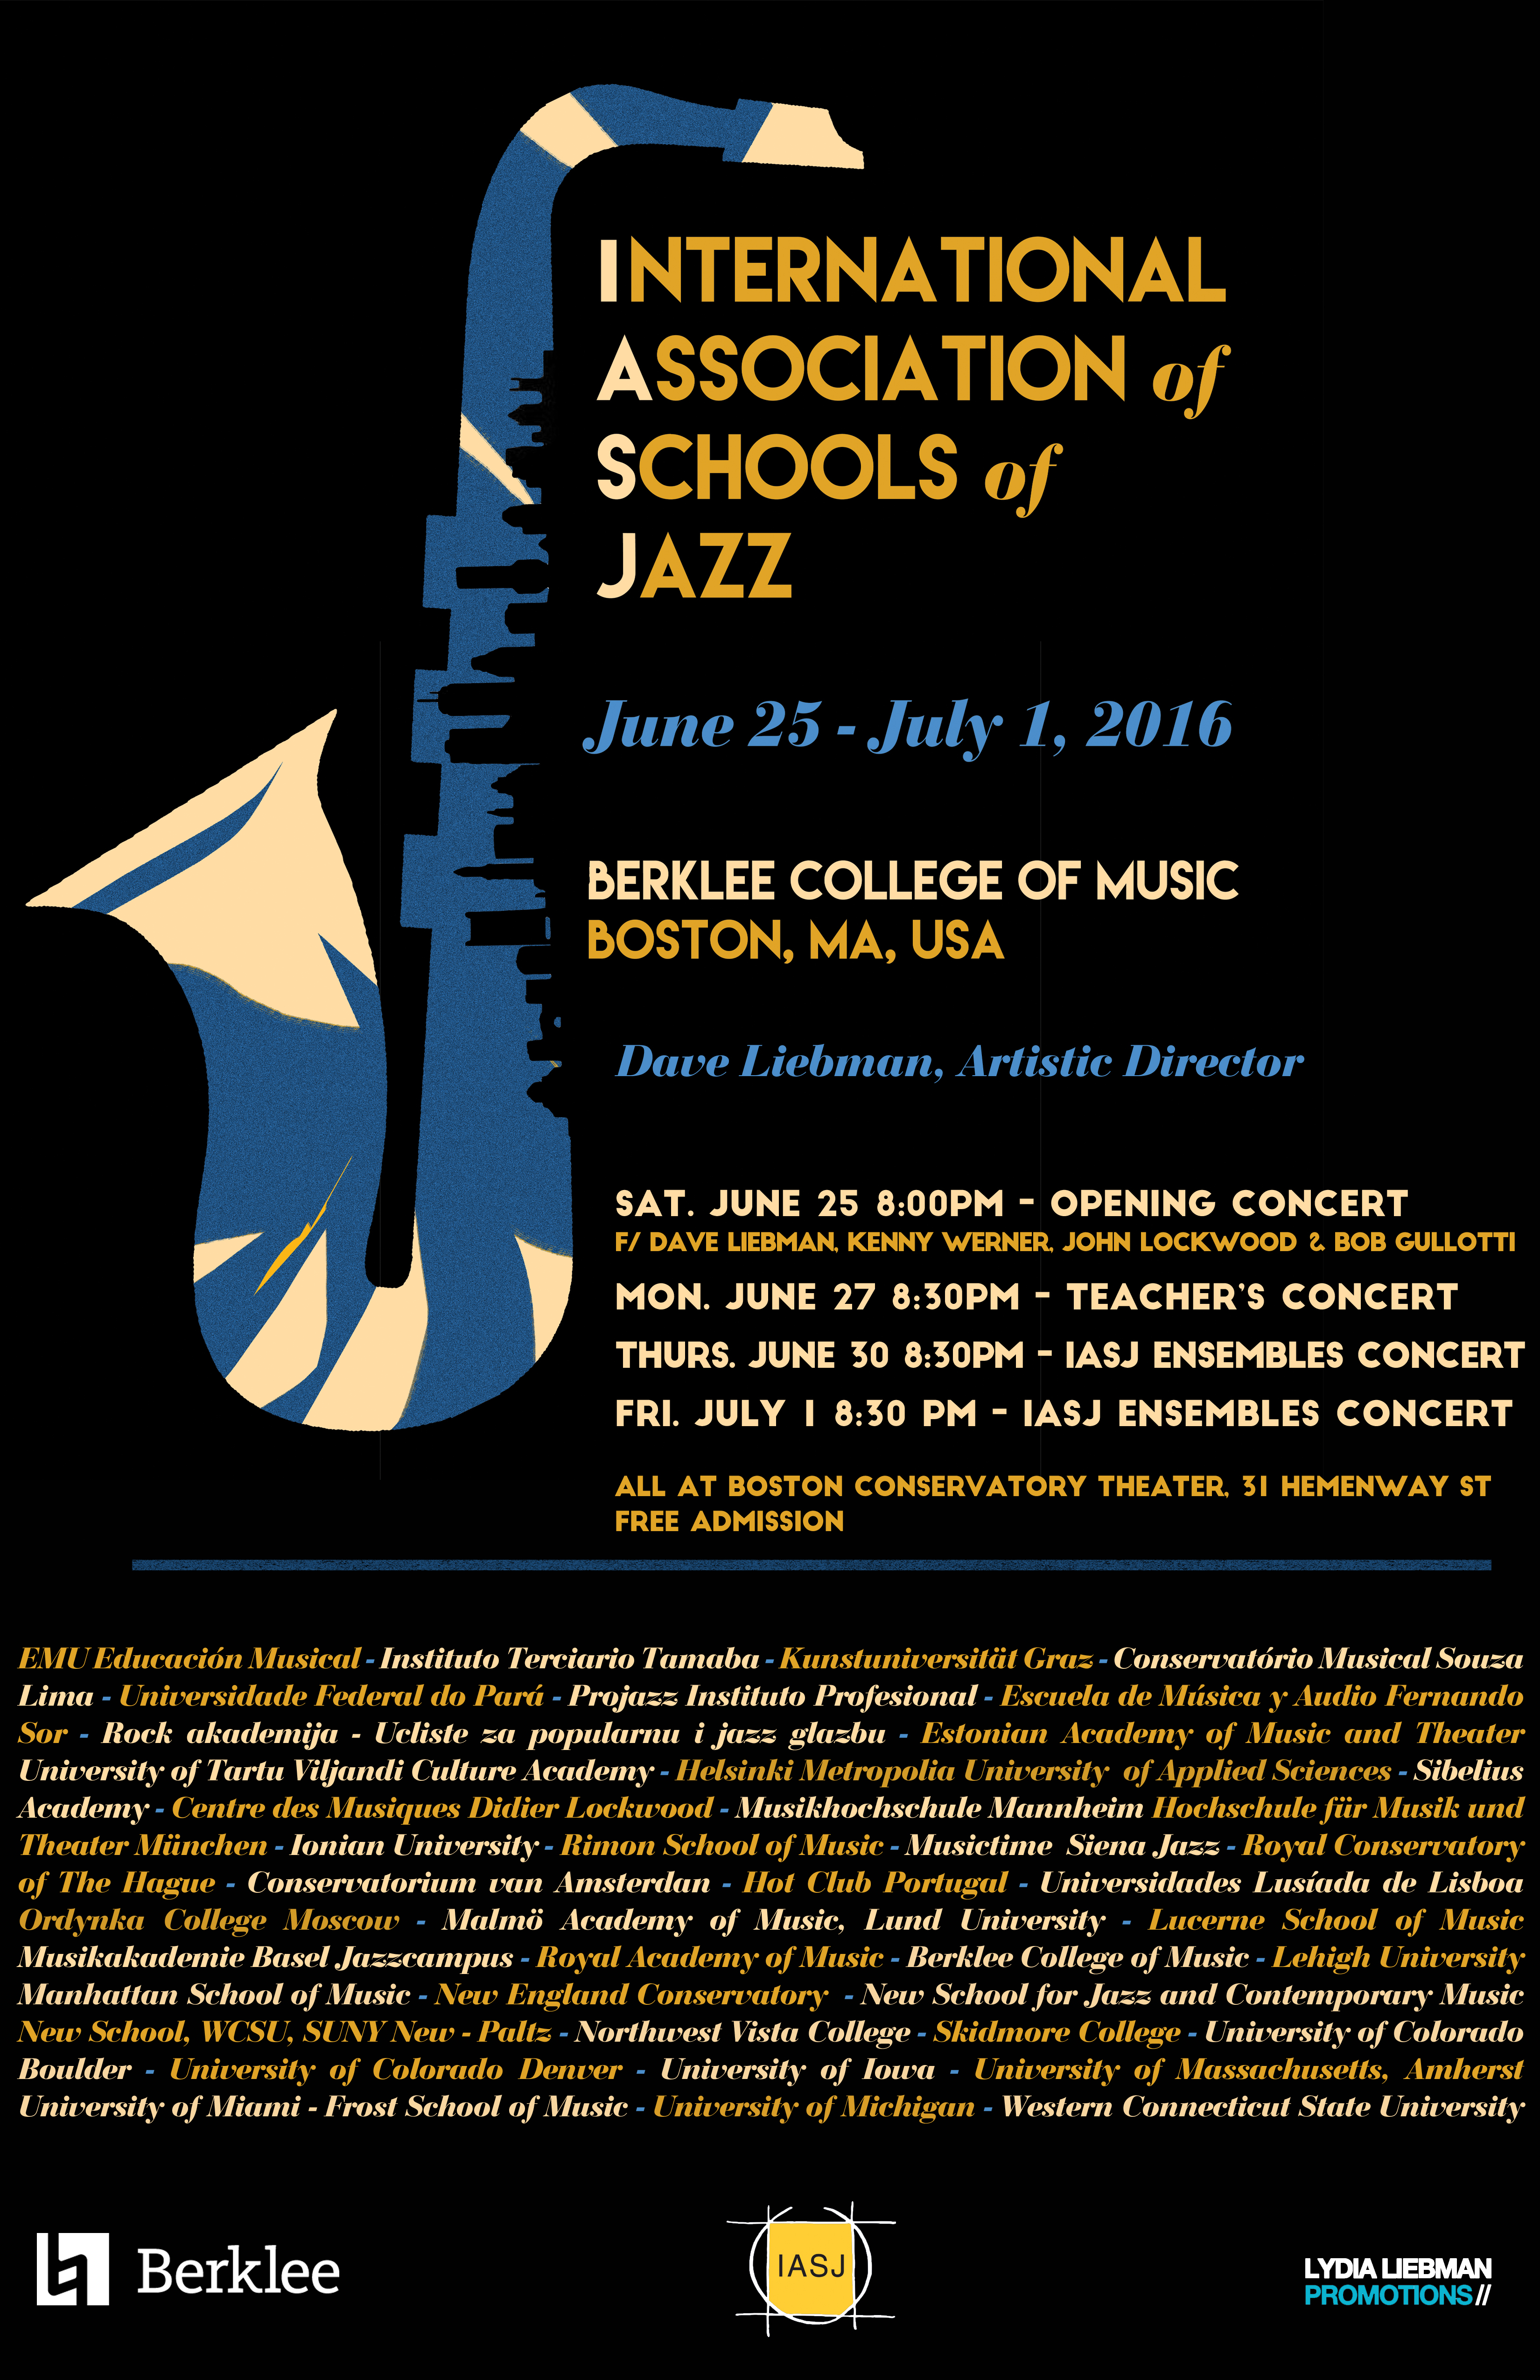 International Association of Schools of Jazz (IASJ) Presents 26th Annual Conference at Berklee College of Music, Boston MA